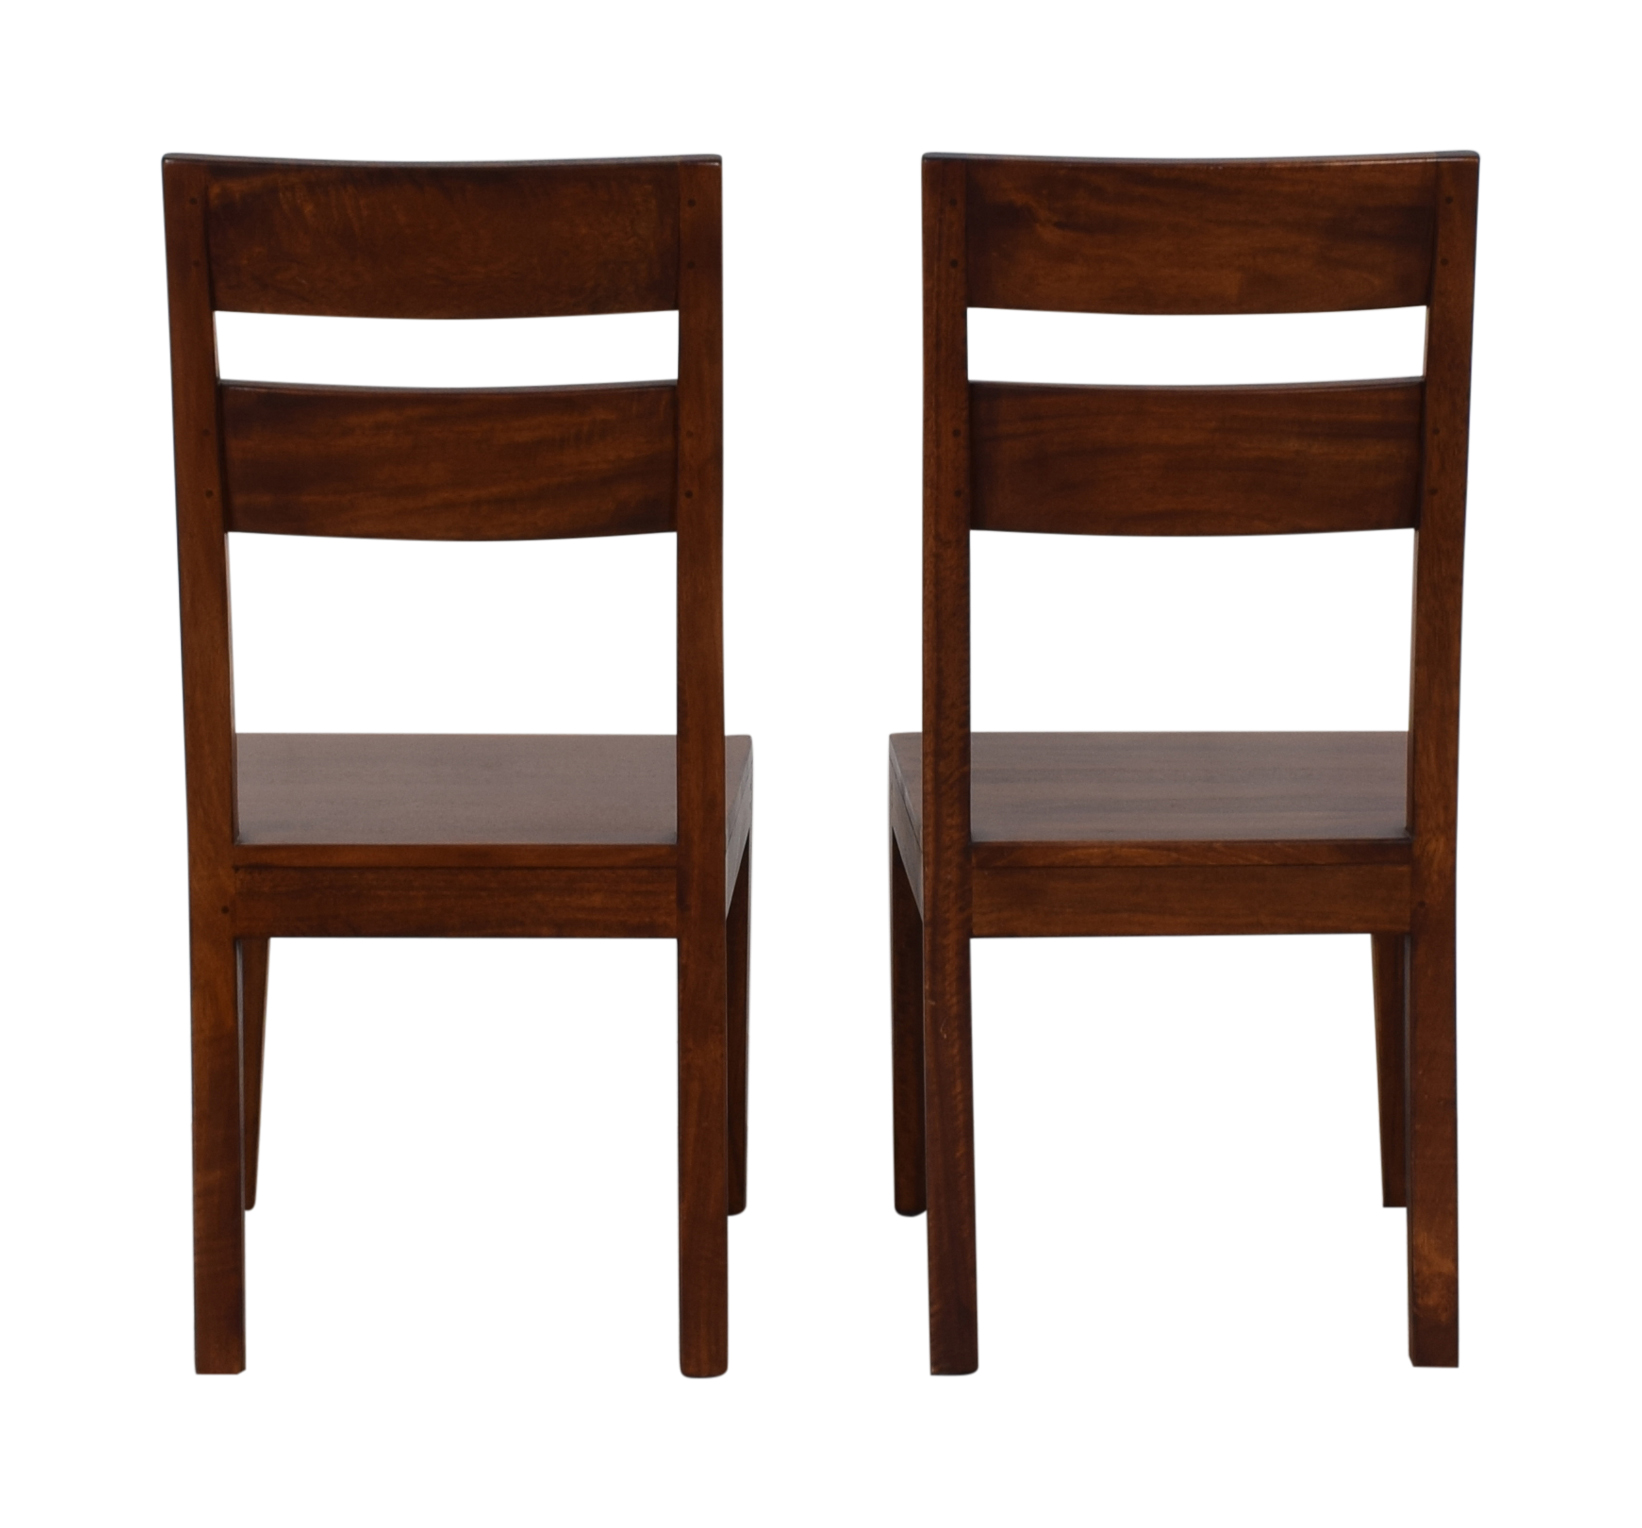 Crate & Barrel Crate & Barrel Basque Honey Wood Dining Chairs coupon